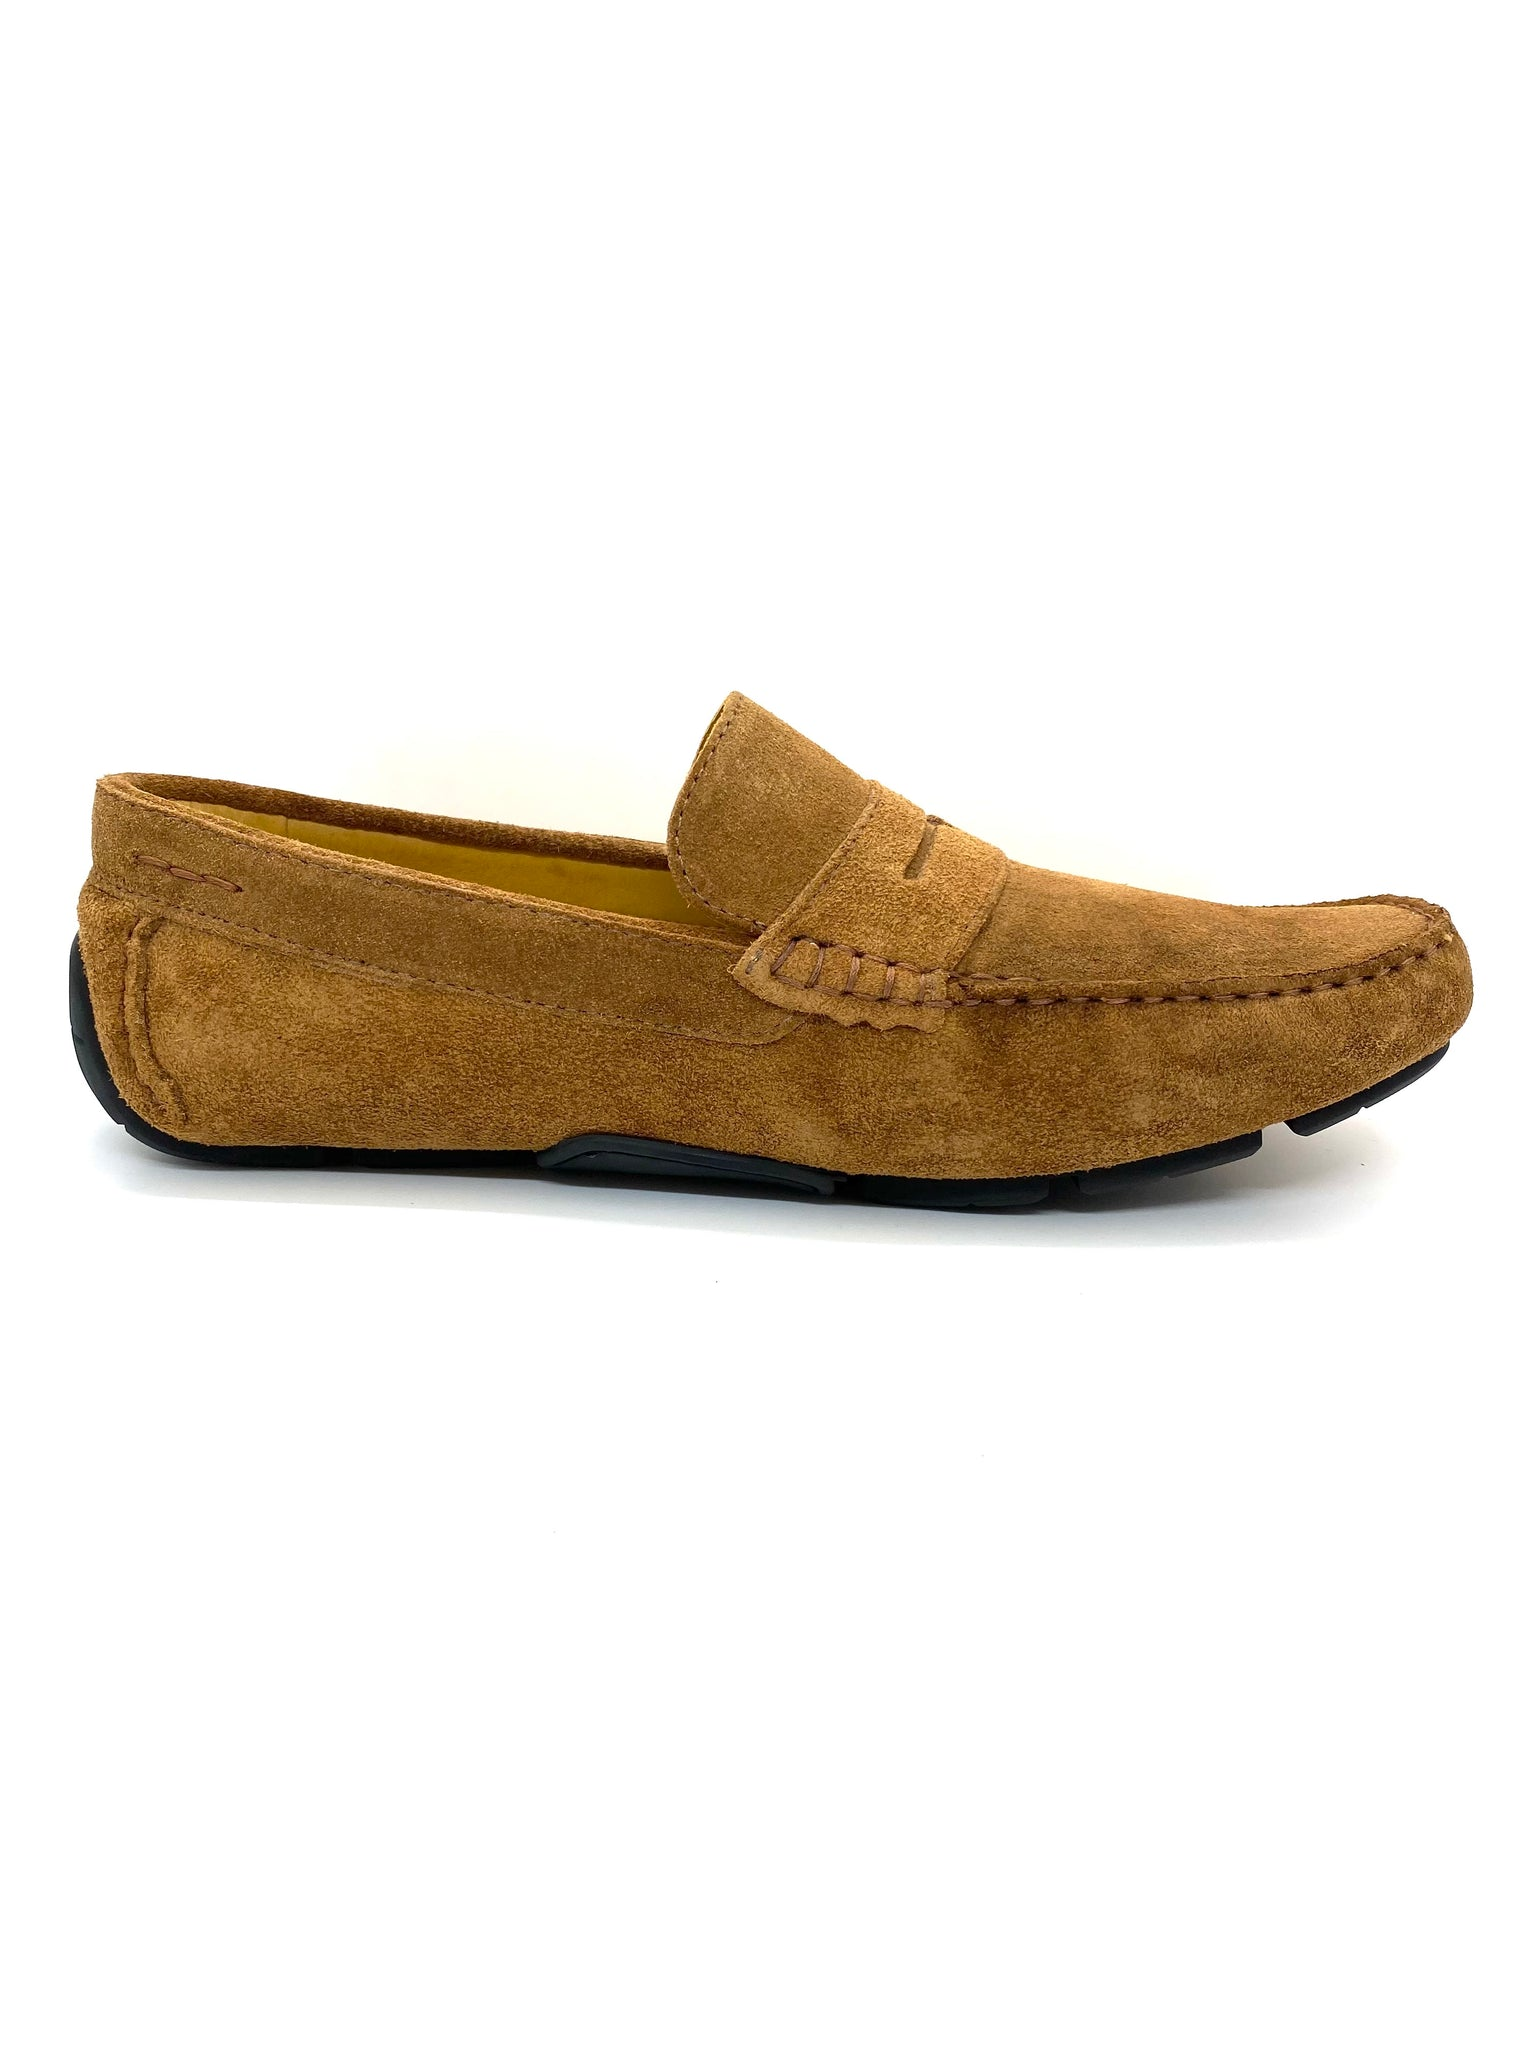 Savelli Men's Casual Loafer